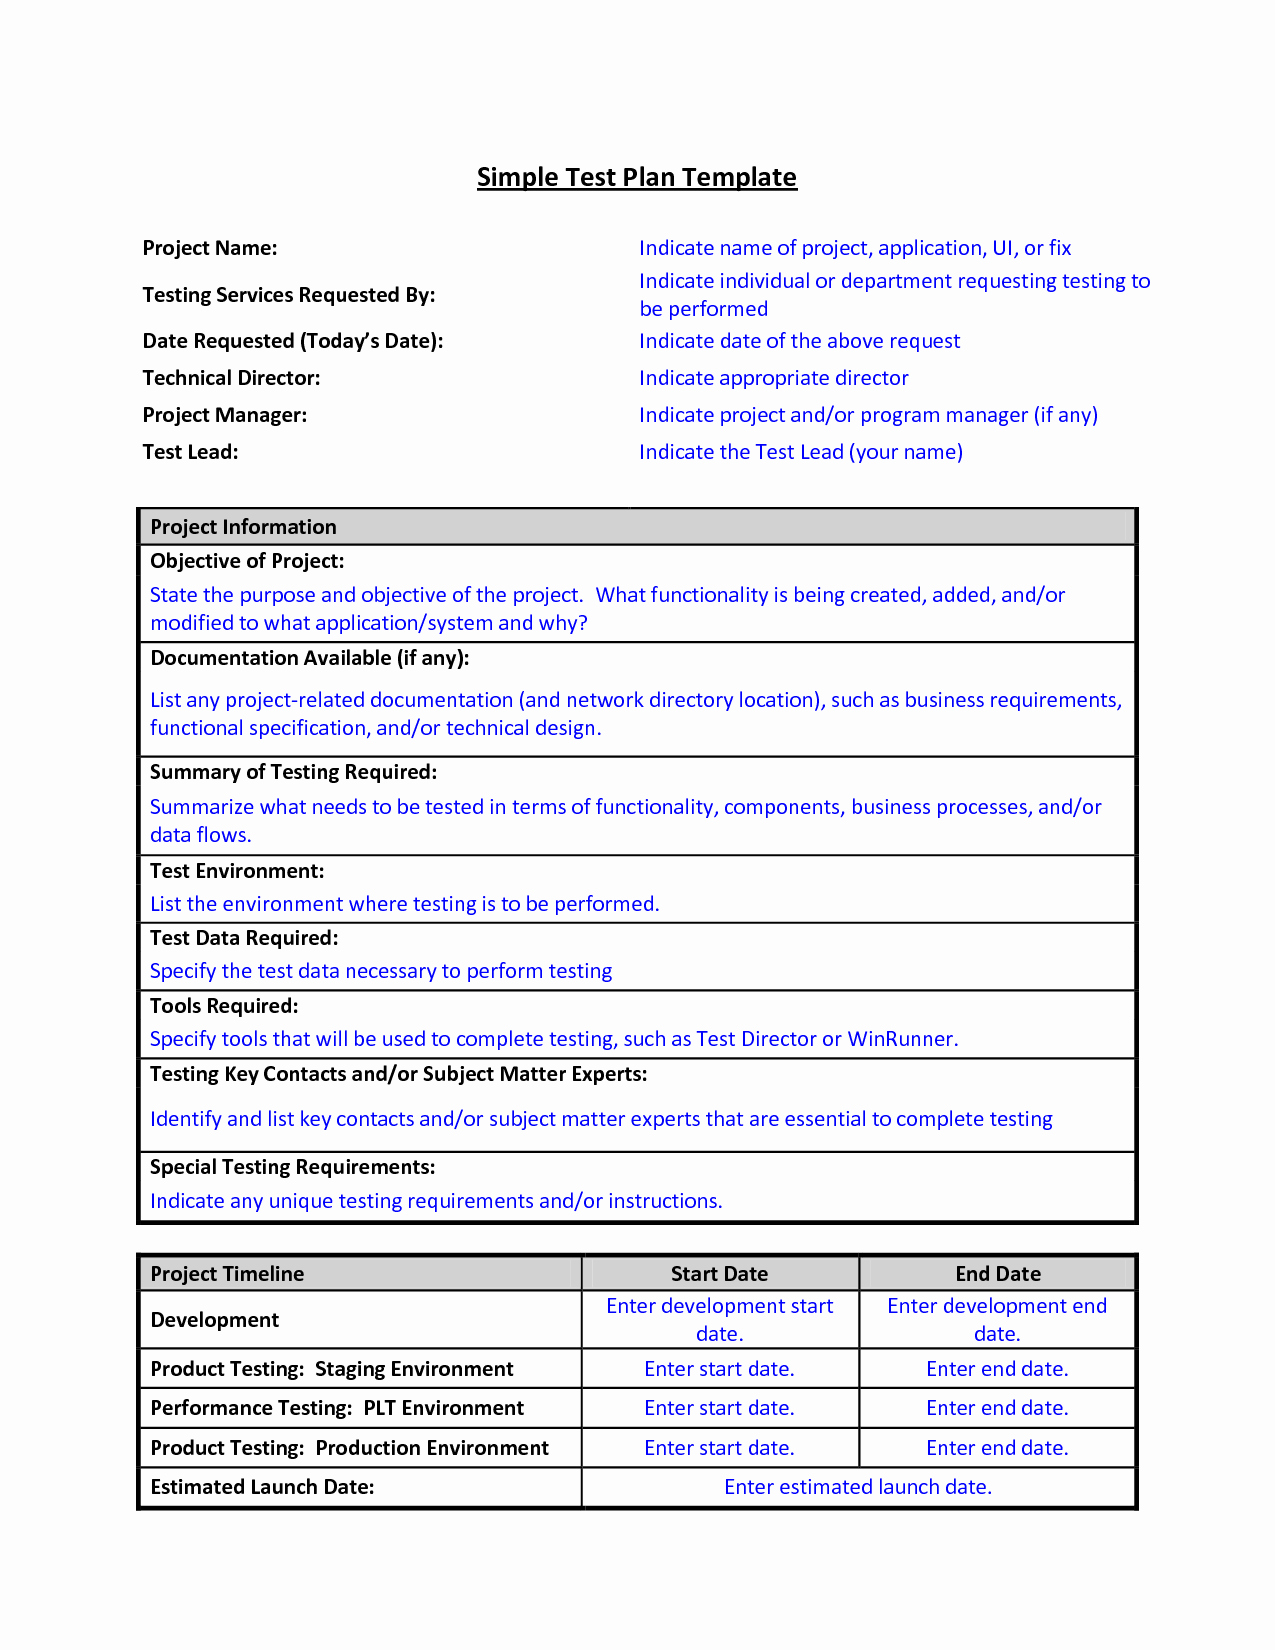 Simple Test Plan Template Fresh Test Plan Template format Sample Work Word Simple